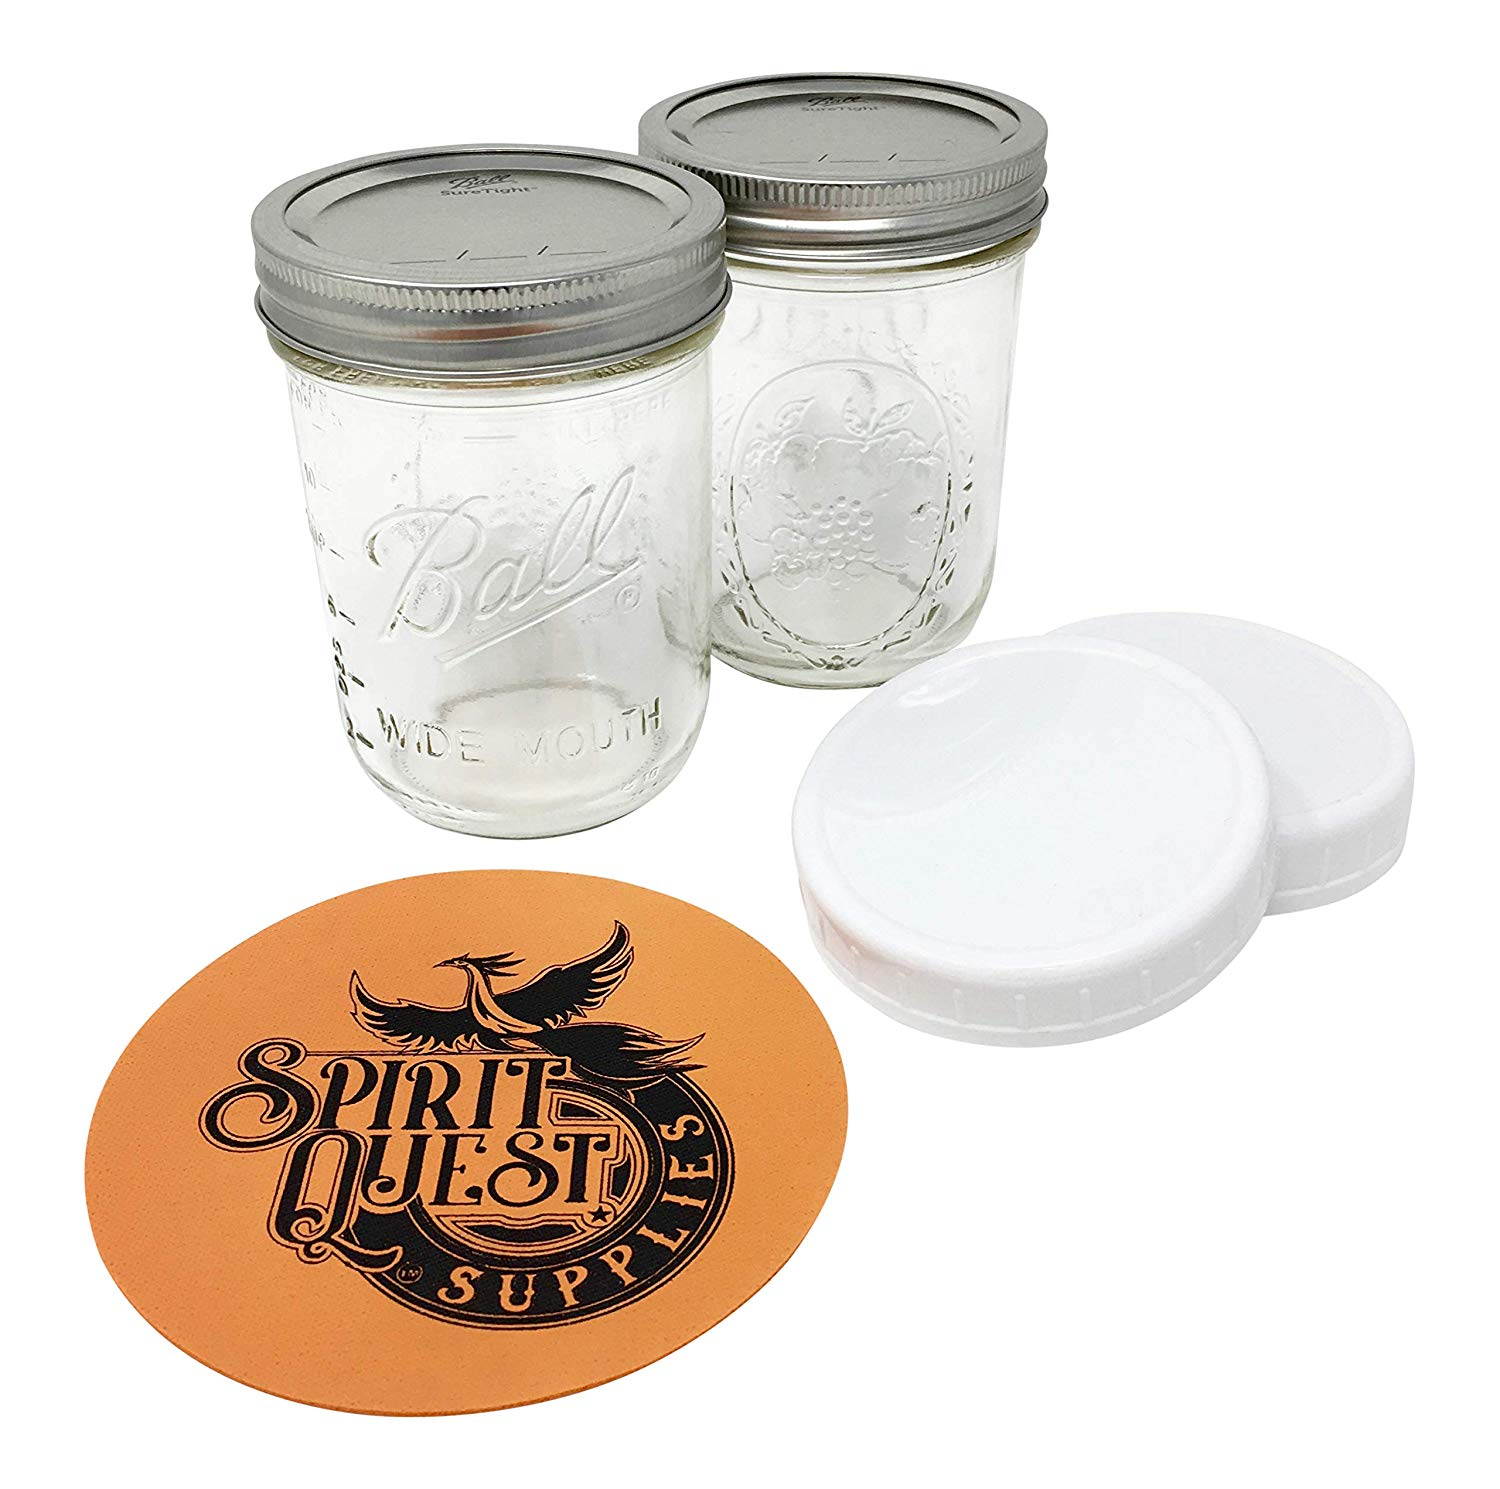 Ball Pint Mason Jars with Storage Lids and Jar Opener - Bundle Pack of 2 16 oz Wide Mouth Jars, 2 Storage Caps, and 1 Spirit Quest Supplies Large Jar Opener